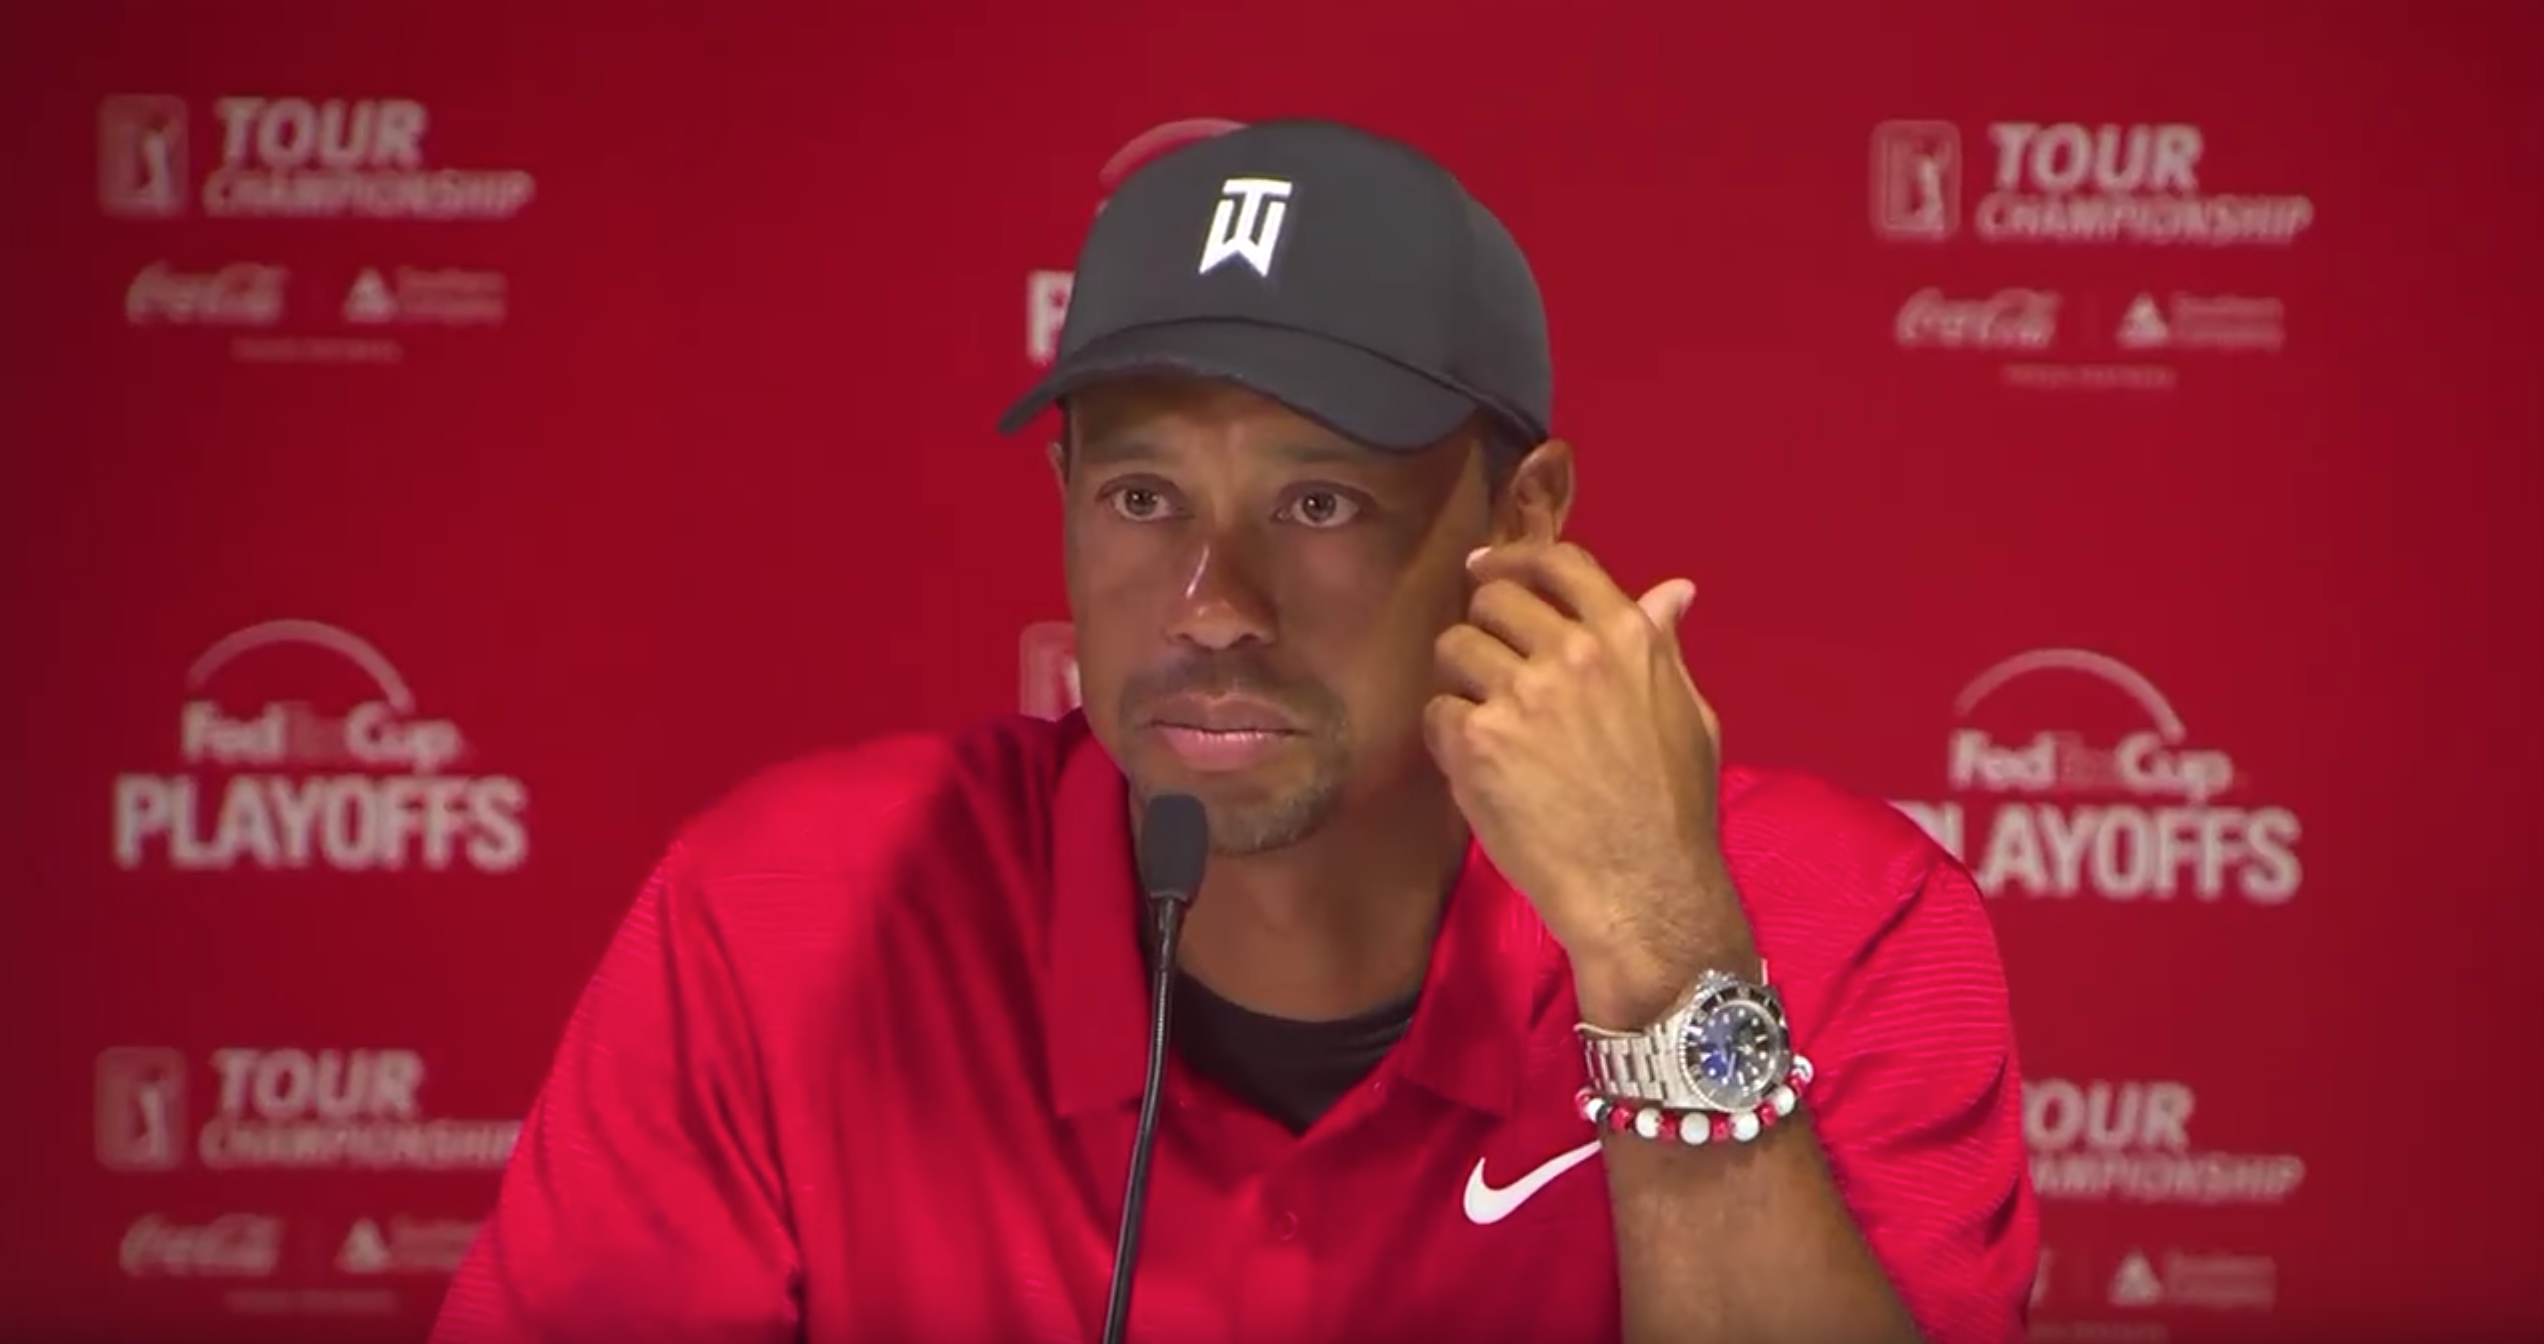 Tiger Woods has been seen wearing his Deepsea for a few years now